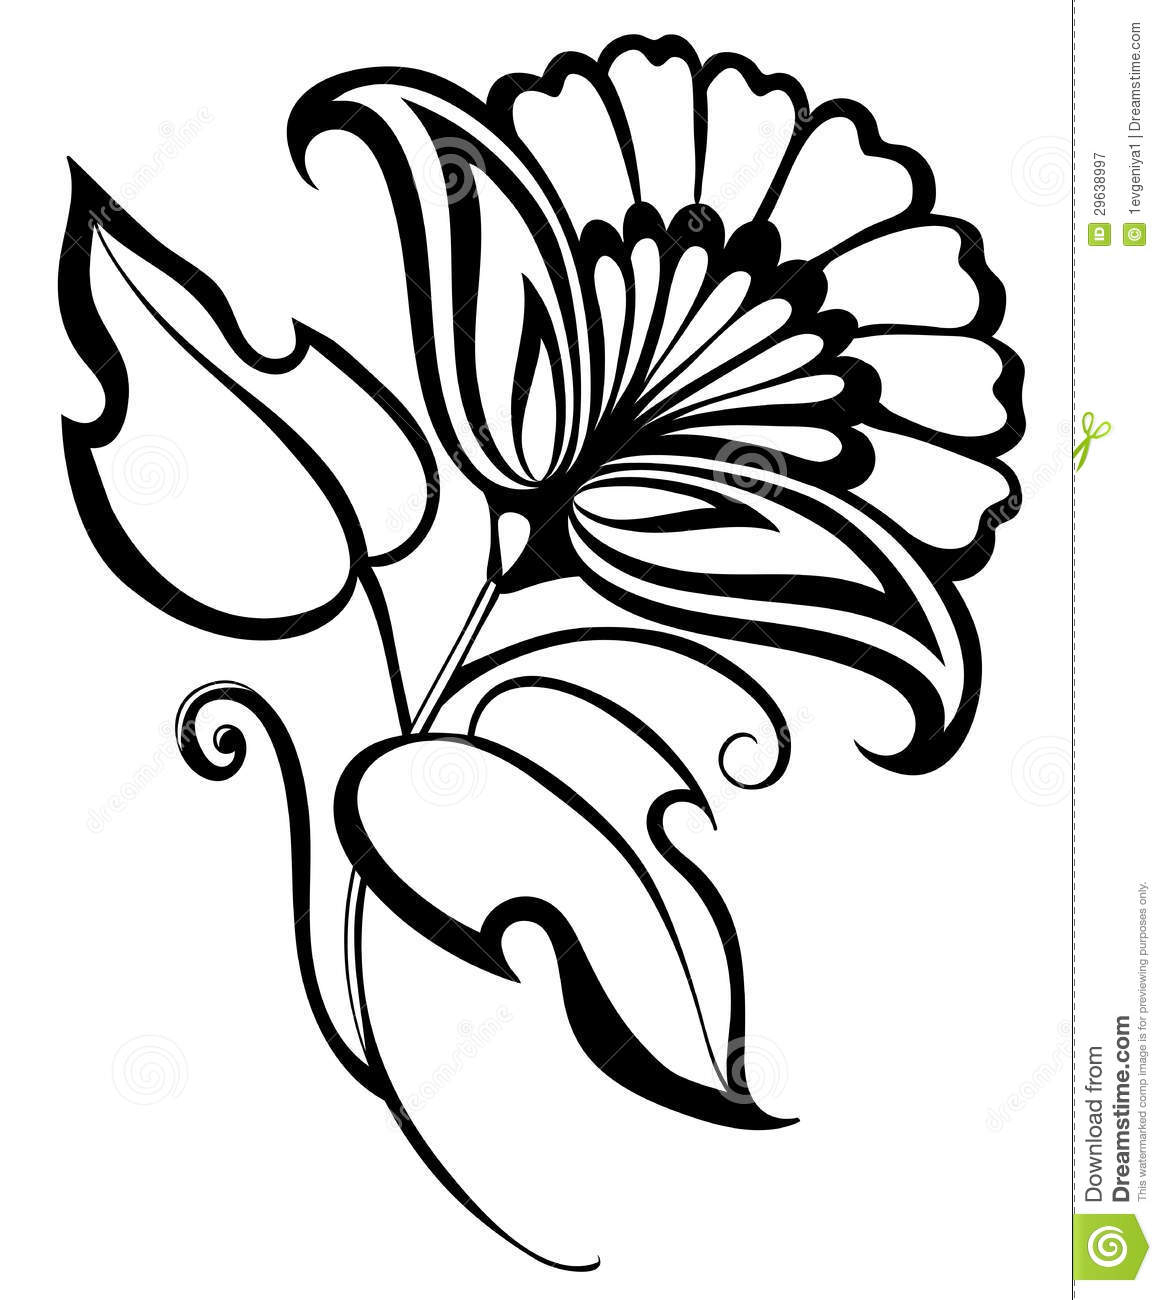 1162x1300 Simple Rose Drawings In Black And White Black And White Flower